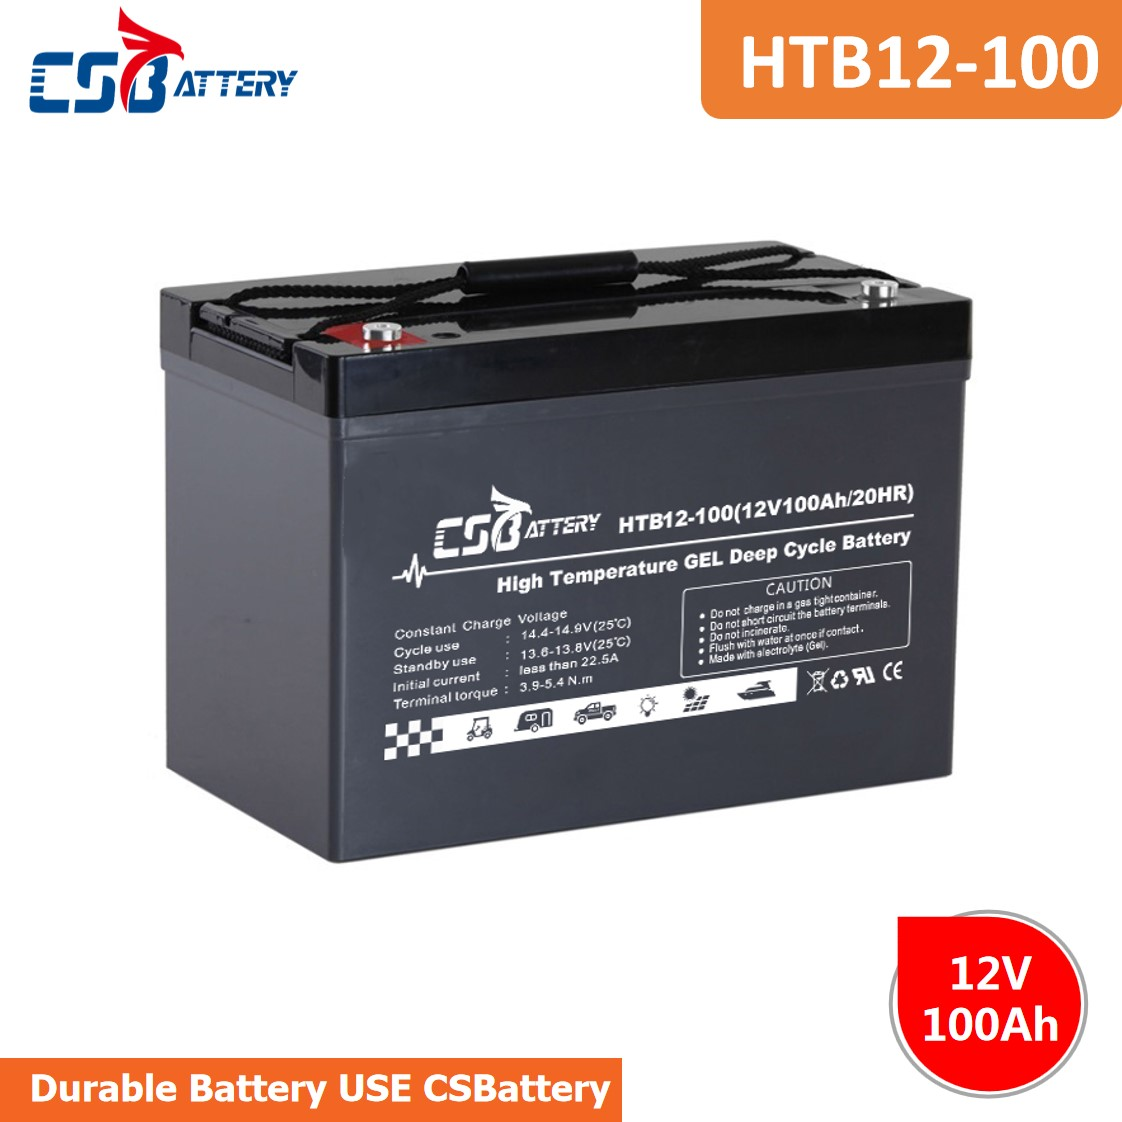 CSBattery 12V 100Ah rechargeable GEL Battery for solar/wind-system/Electric-Power/Lighting/Motors/vs:Sacred Sun